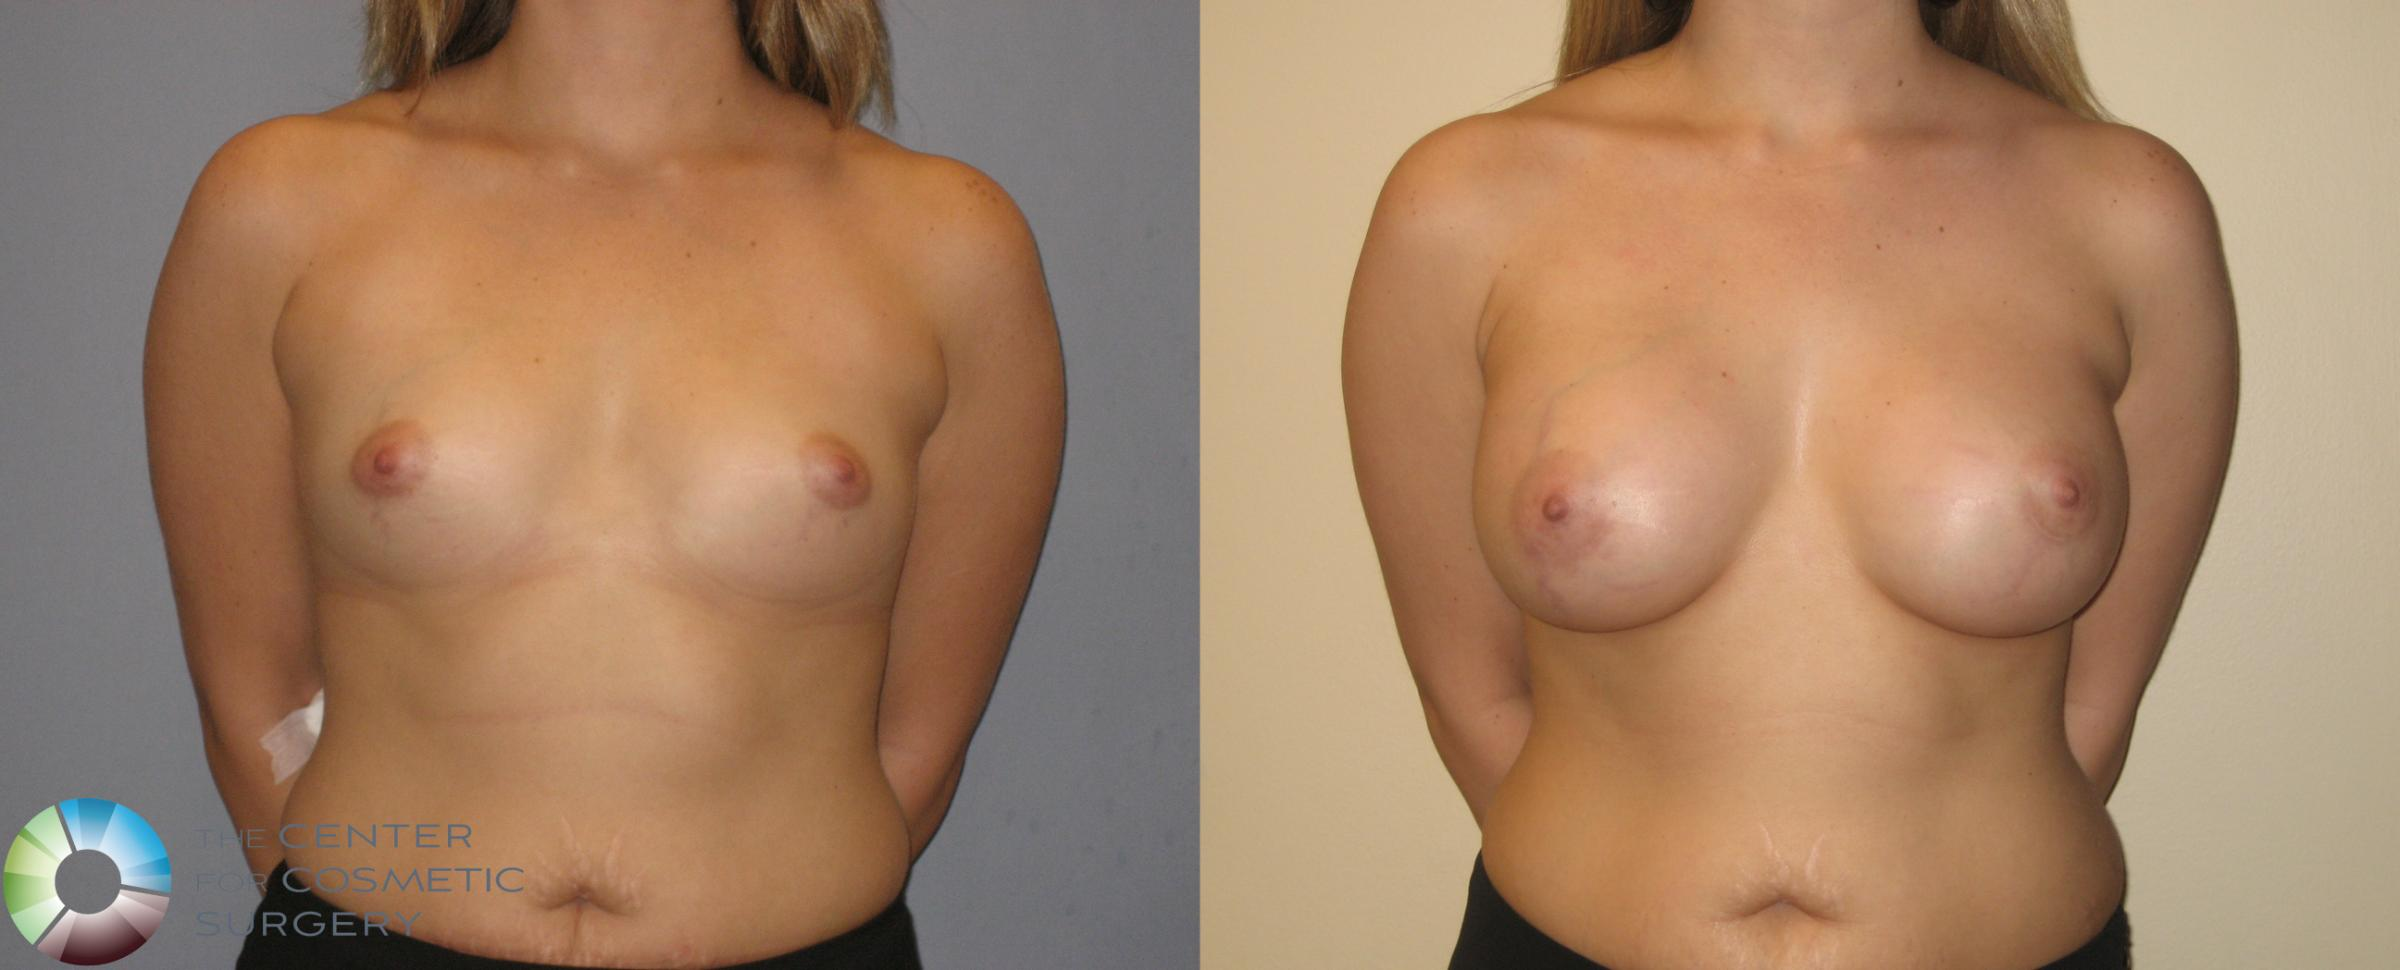 Breast Augmentation Case 137 Before & After View #2 | Golden, CO | The Center for Cosmetic Surgery